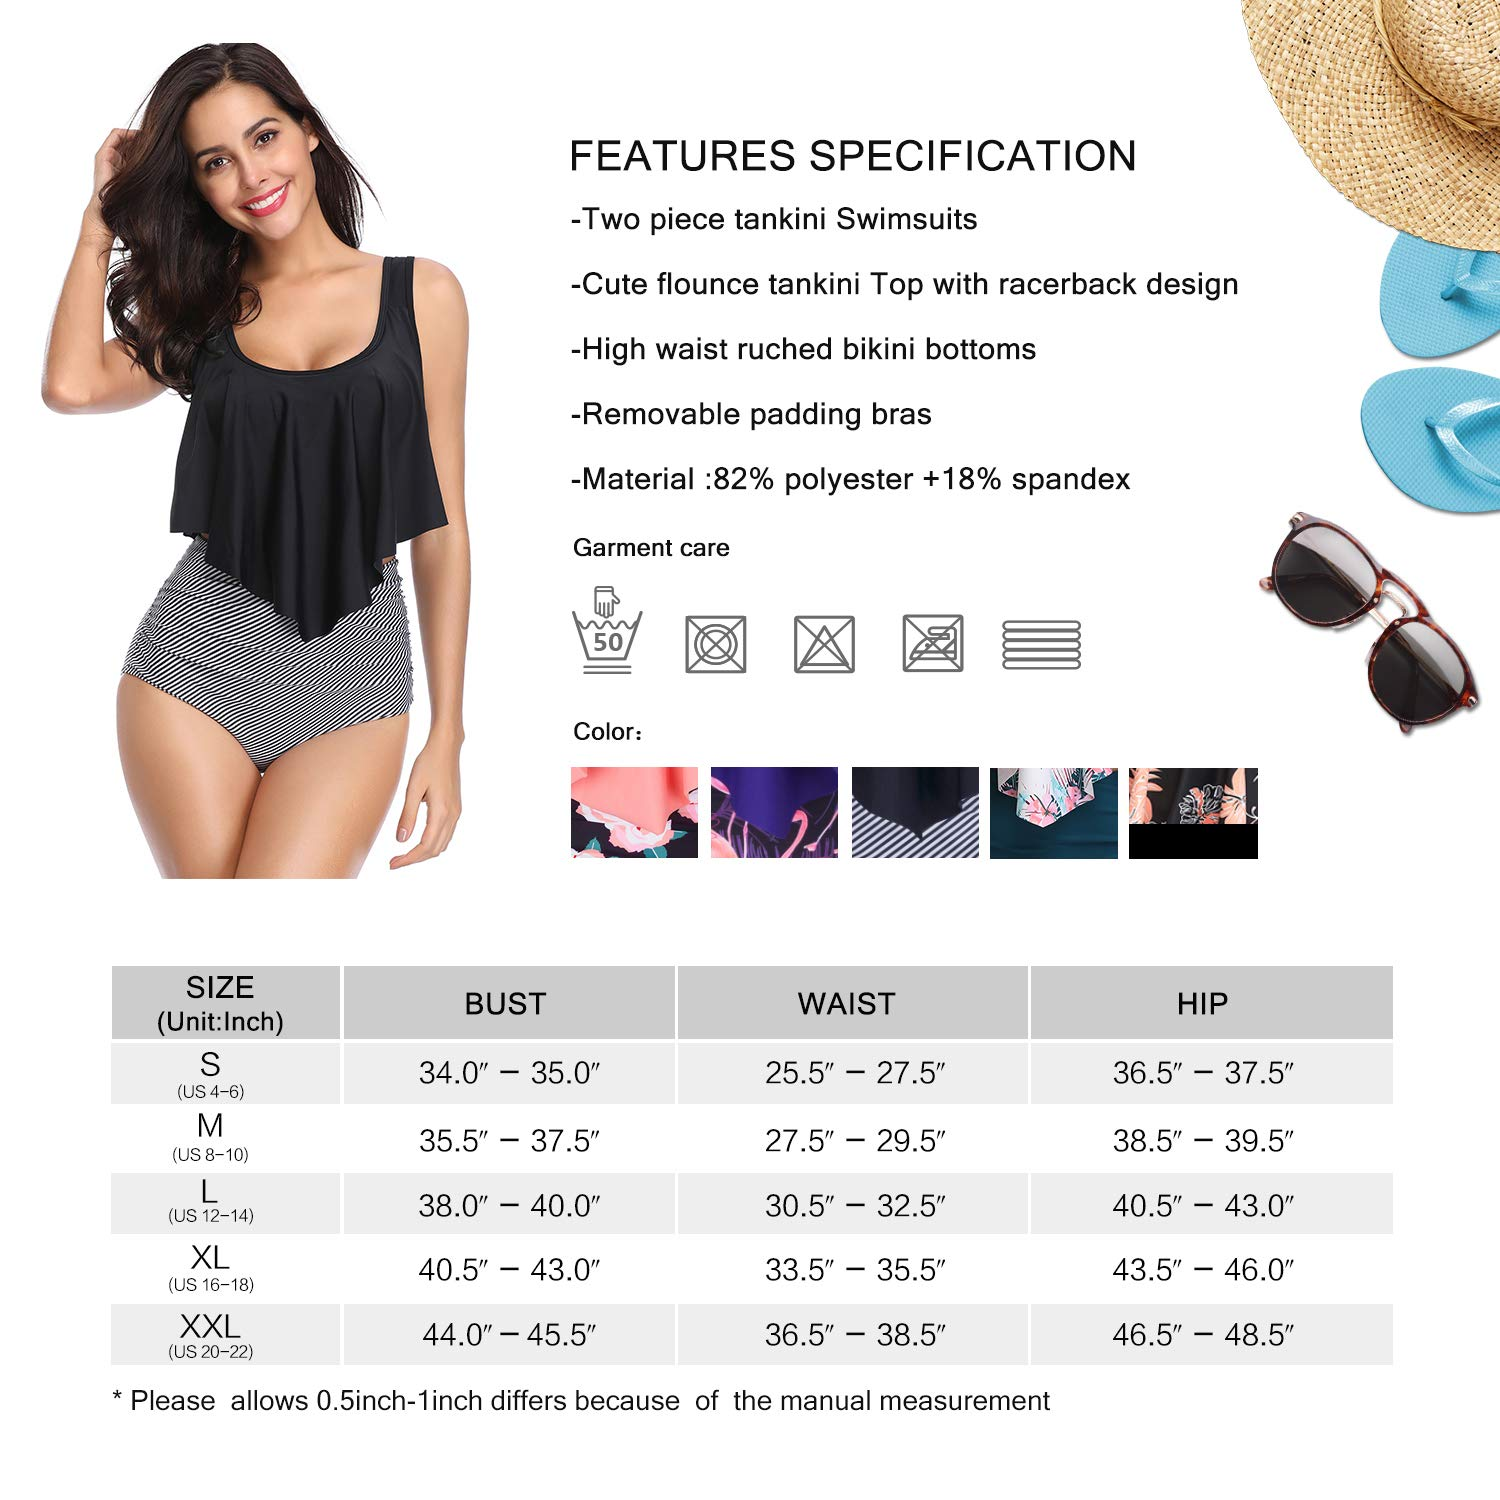 MarinaVida Switmsuit for Women Two Pieces Bathing Suits Top Ruffled Racerback with High Waisted Bottom Tankini Set